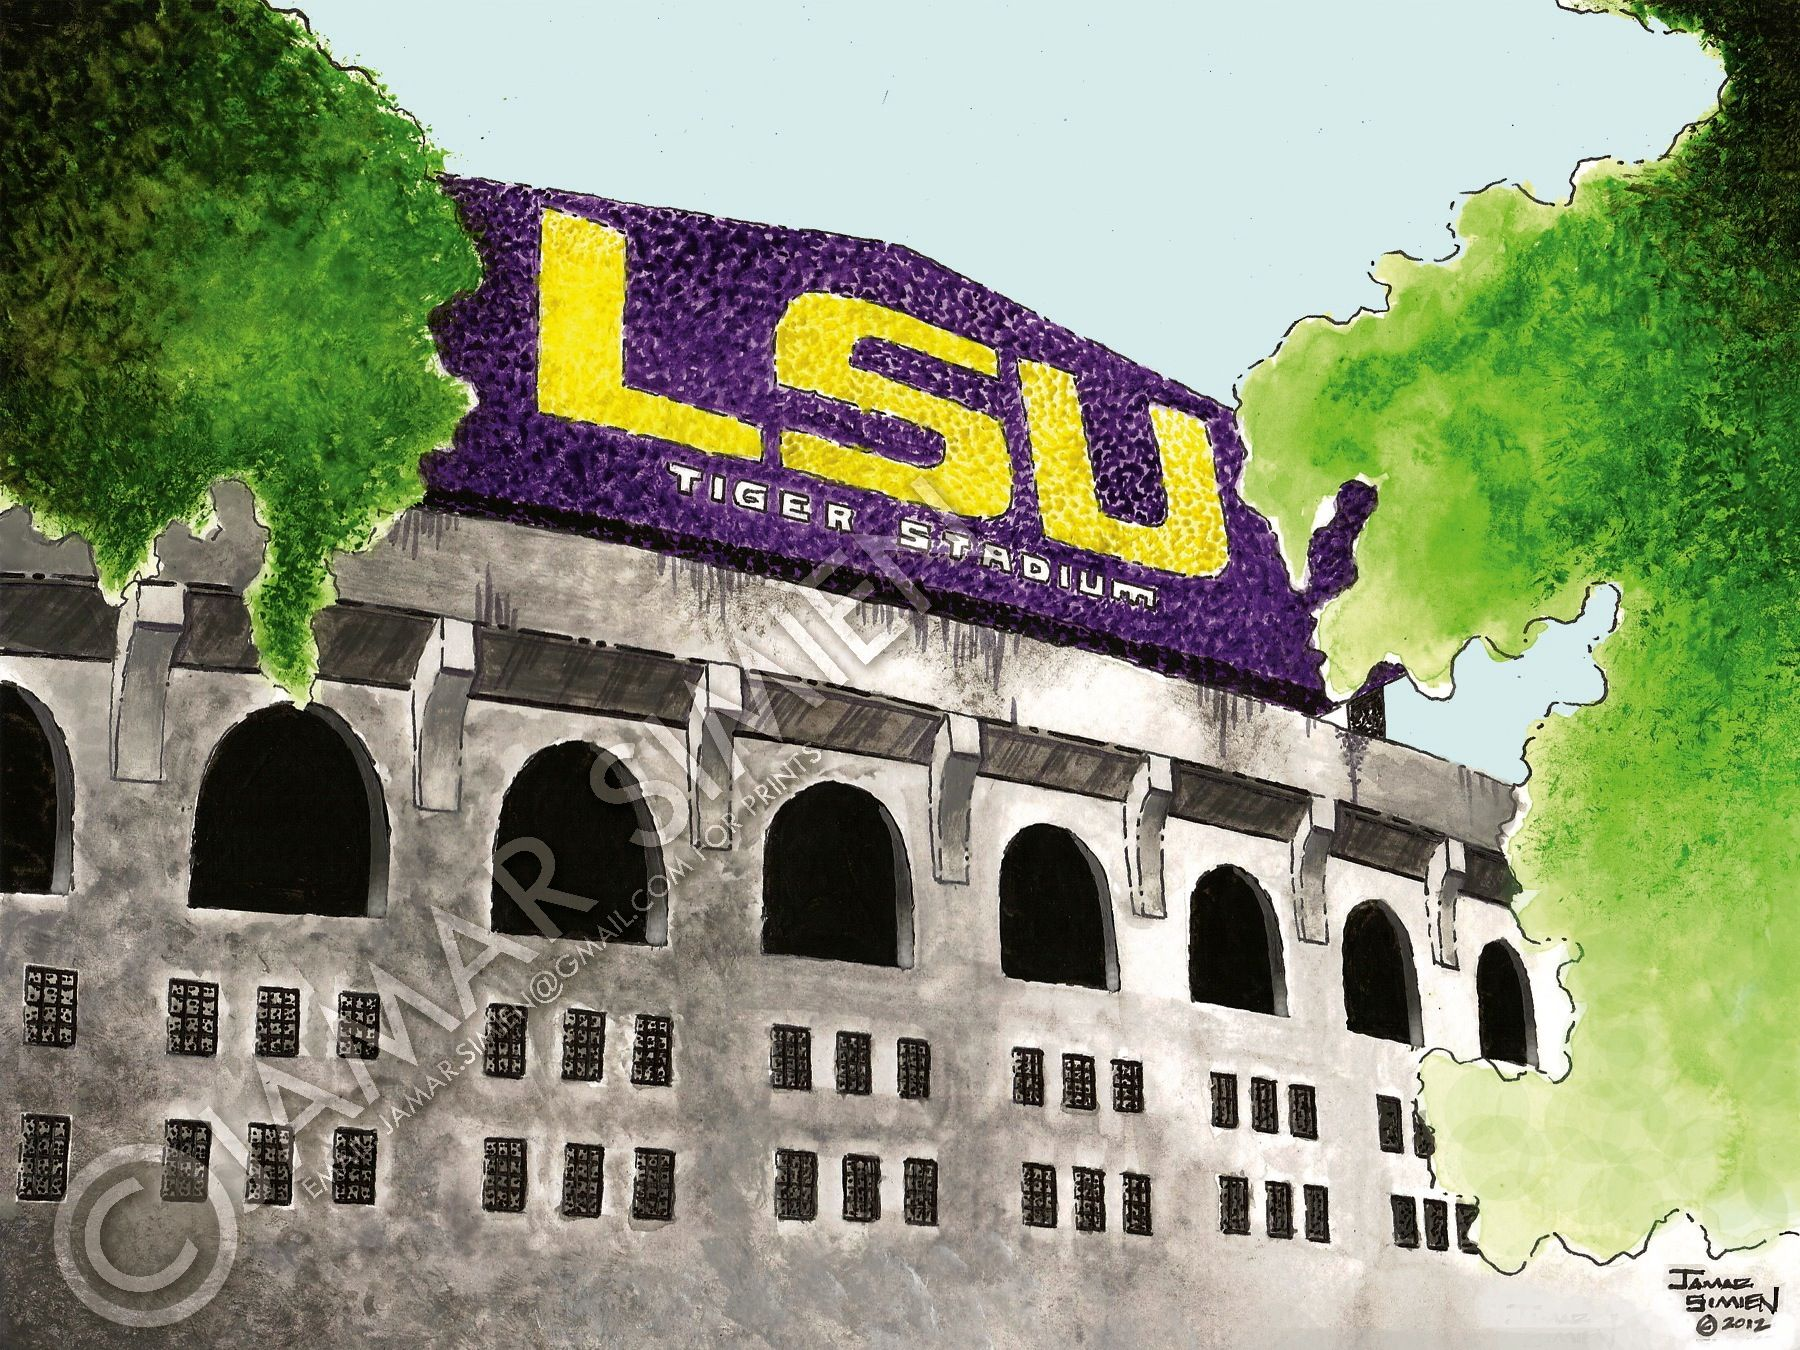 Lsu S Tiger Stadium Watercolor Painting By Jamar Simien Https Www Etsy Com Listing 104197567 Lsu Tiger Stadium Football S Lsu Tiger Stadium Lsu Tigers Lsu